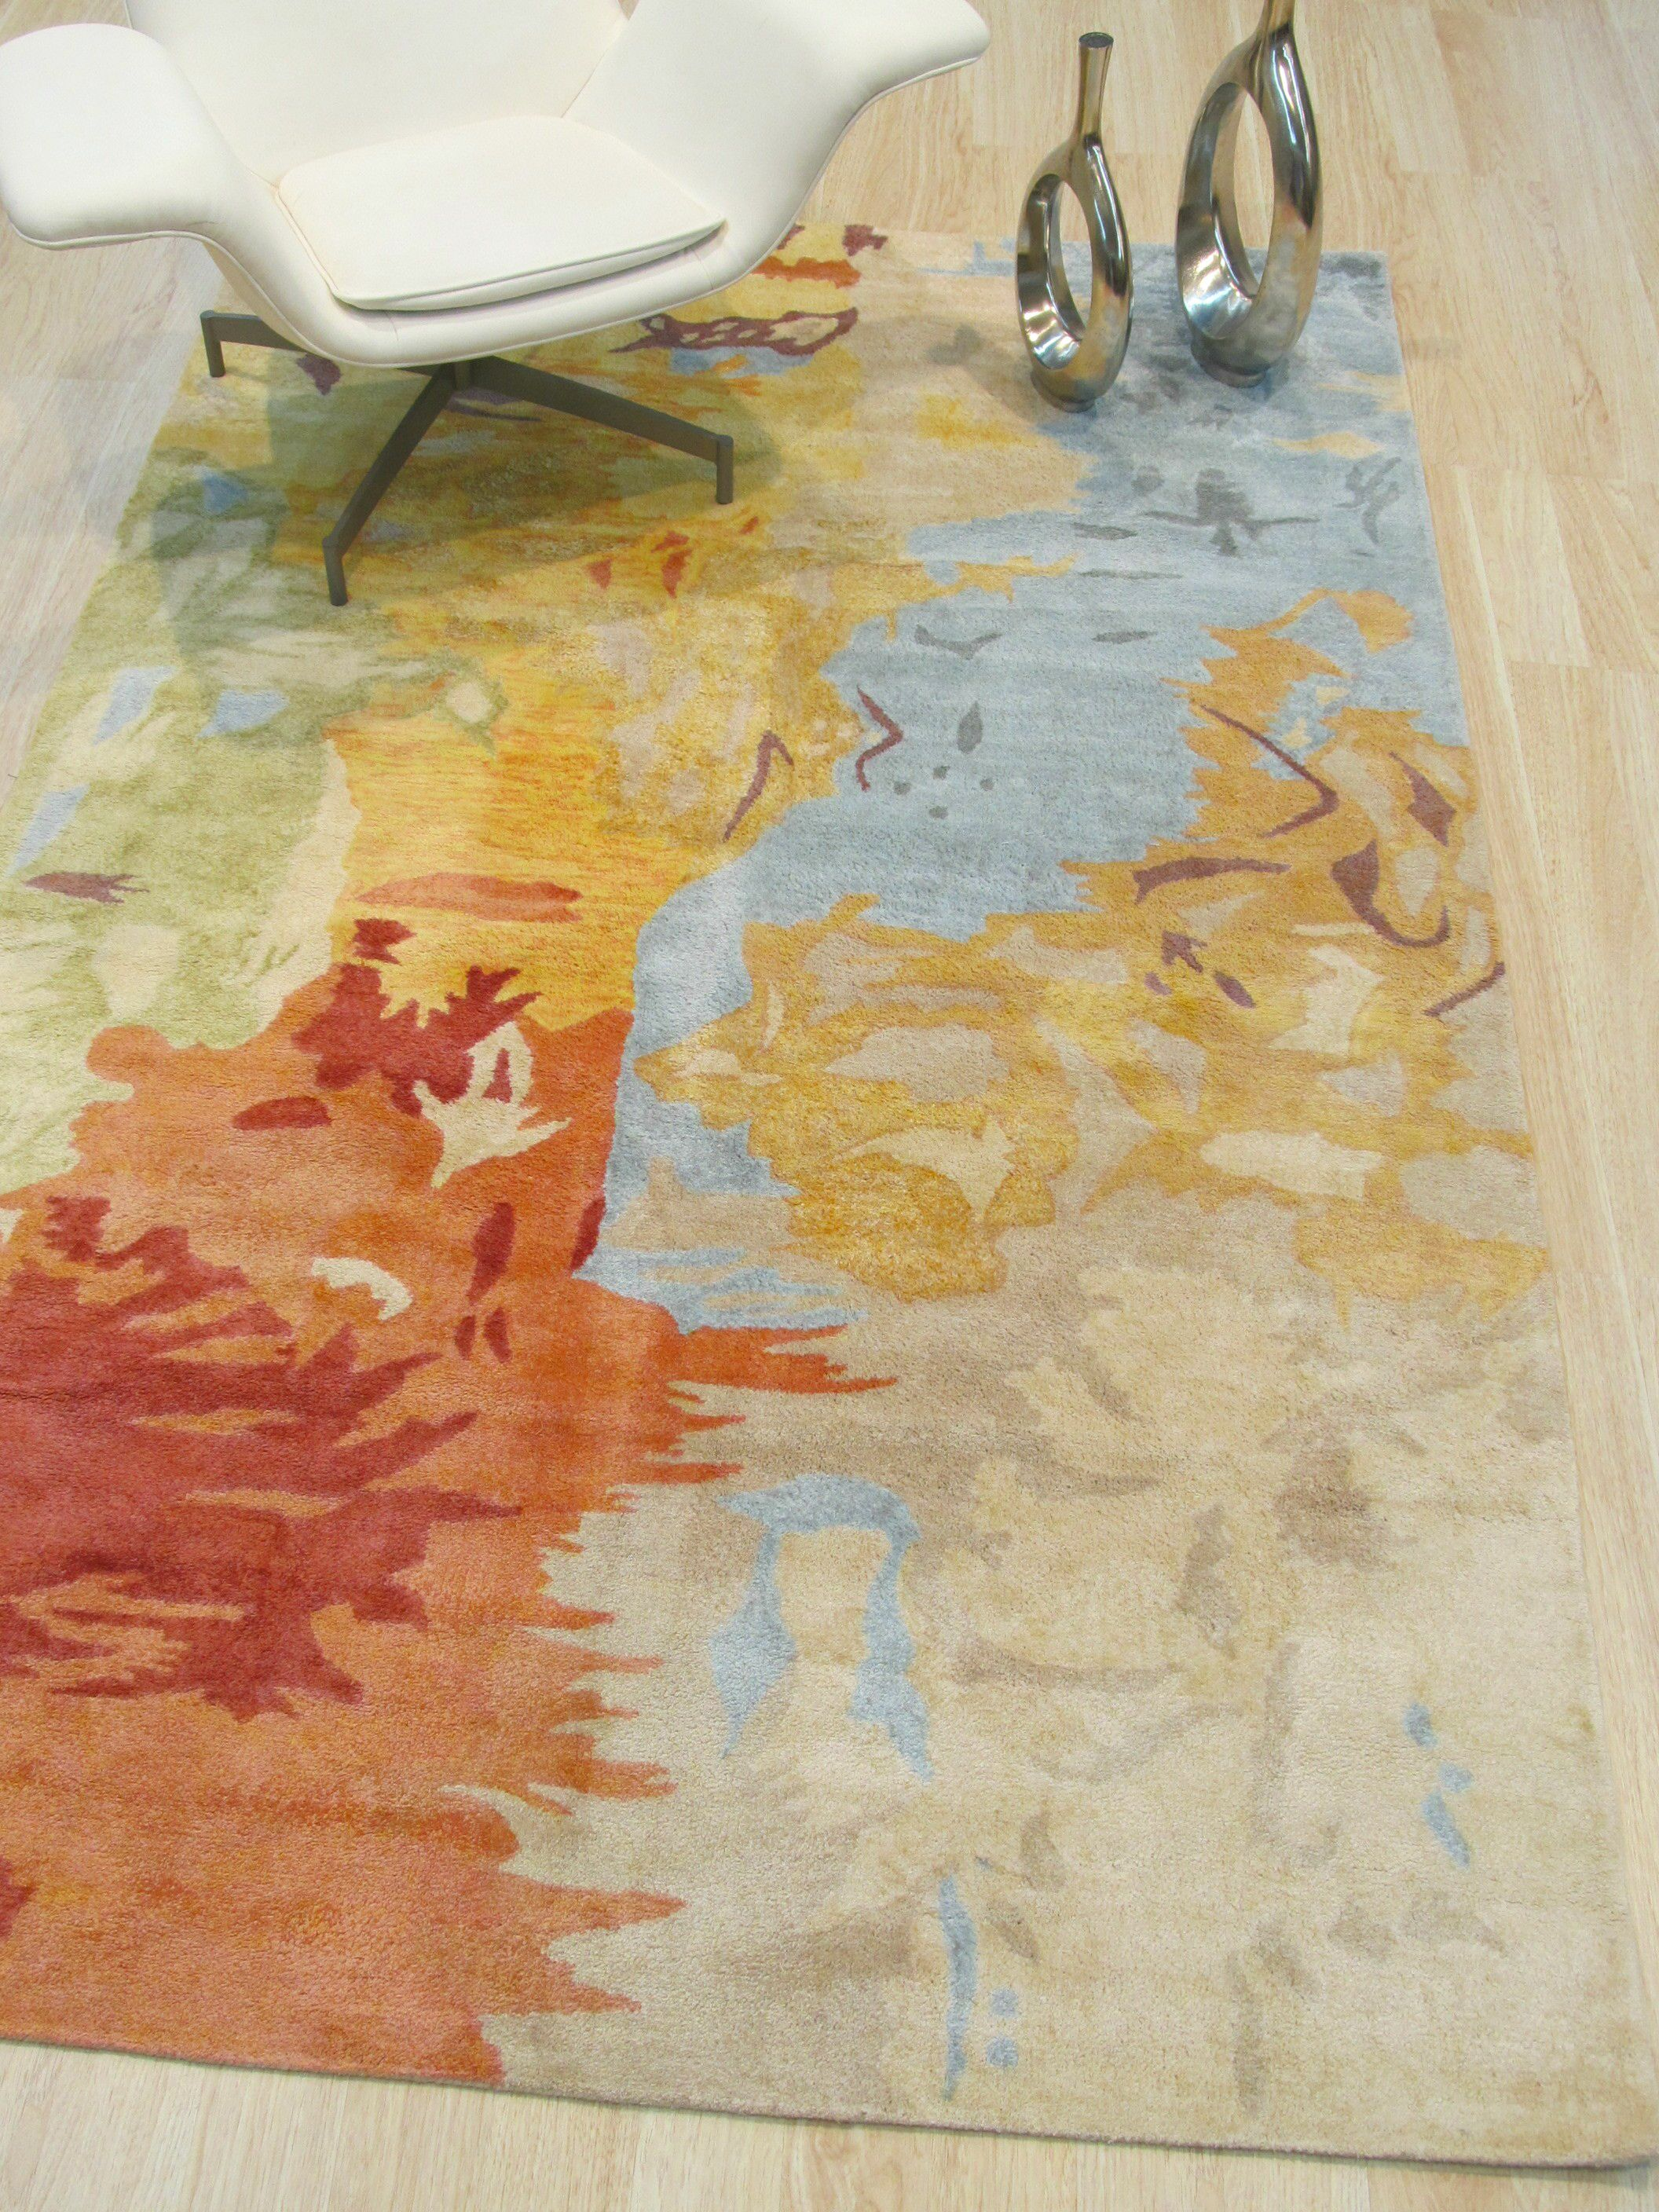 Callie Hand-Tufted Multicolored Area Rug Rug Size: Rectangle 7'9